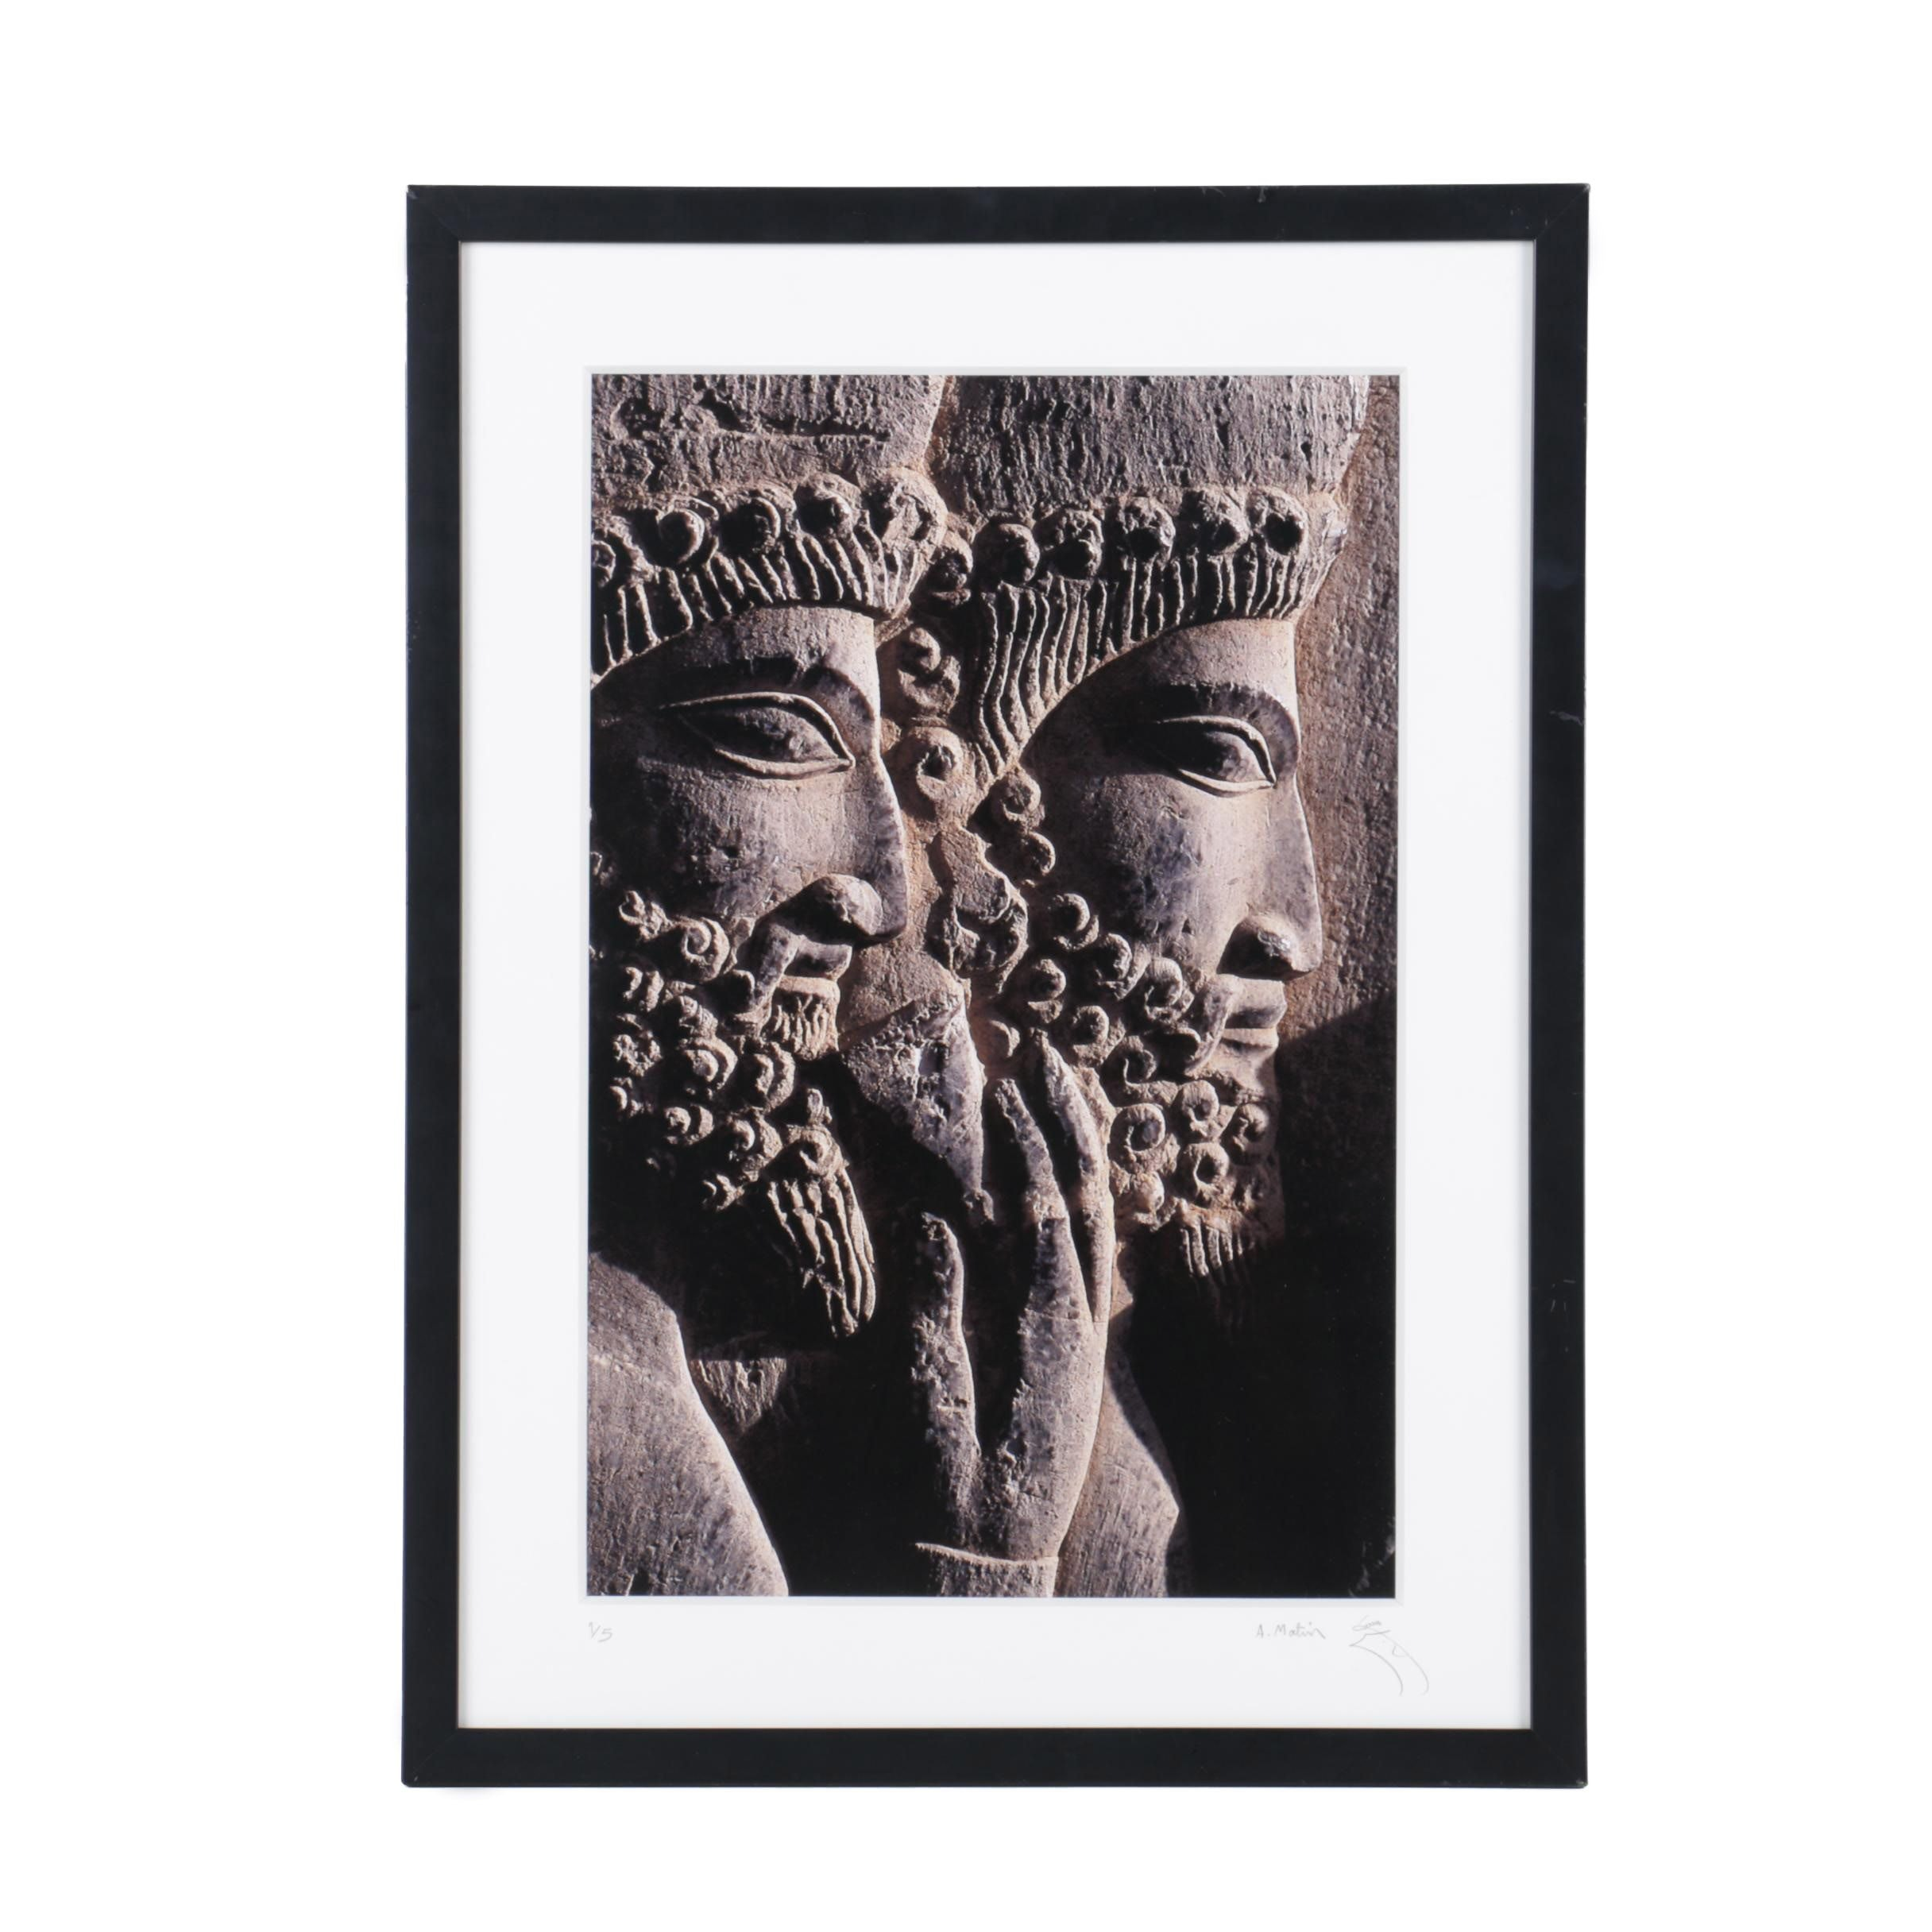 A. Matin Limited Edition Digital Photograph of Ancient Persian Relief